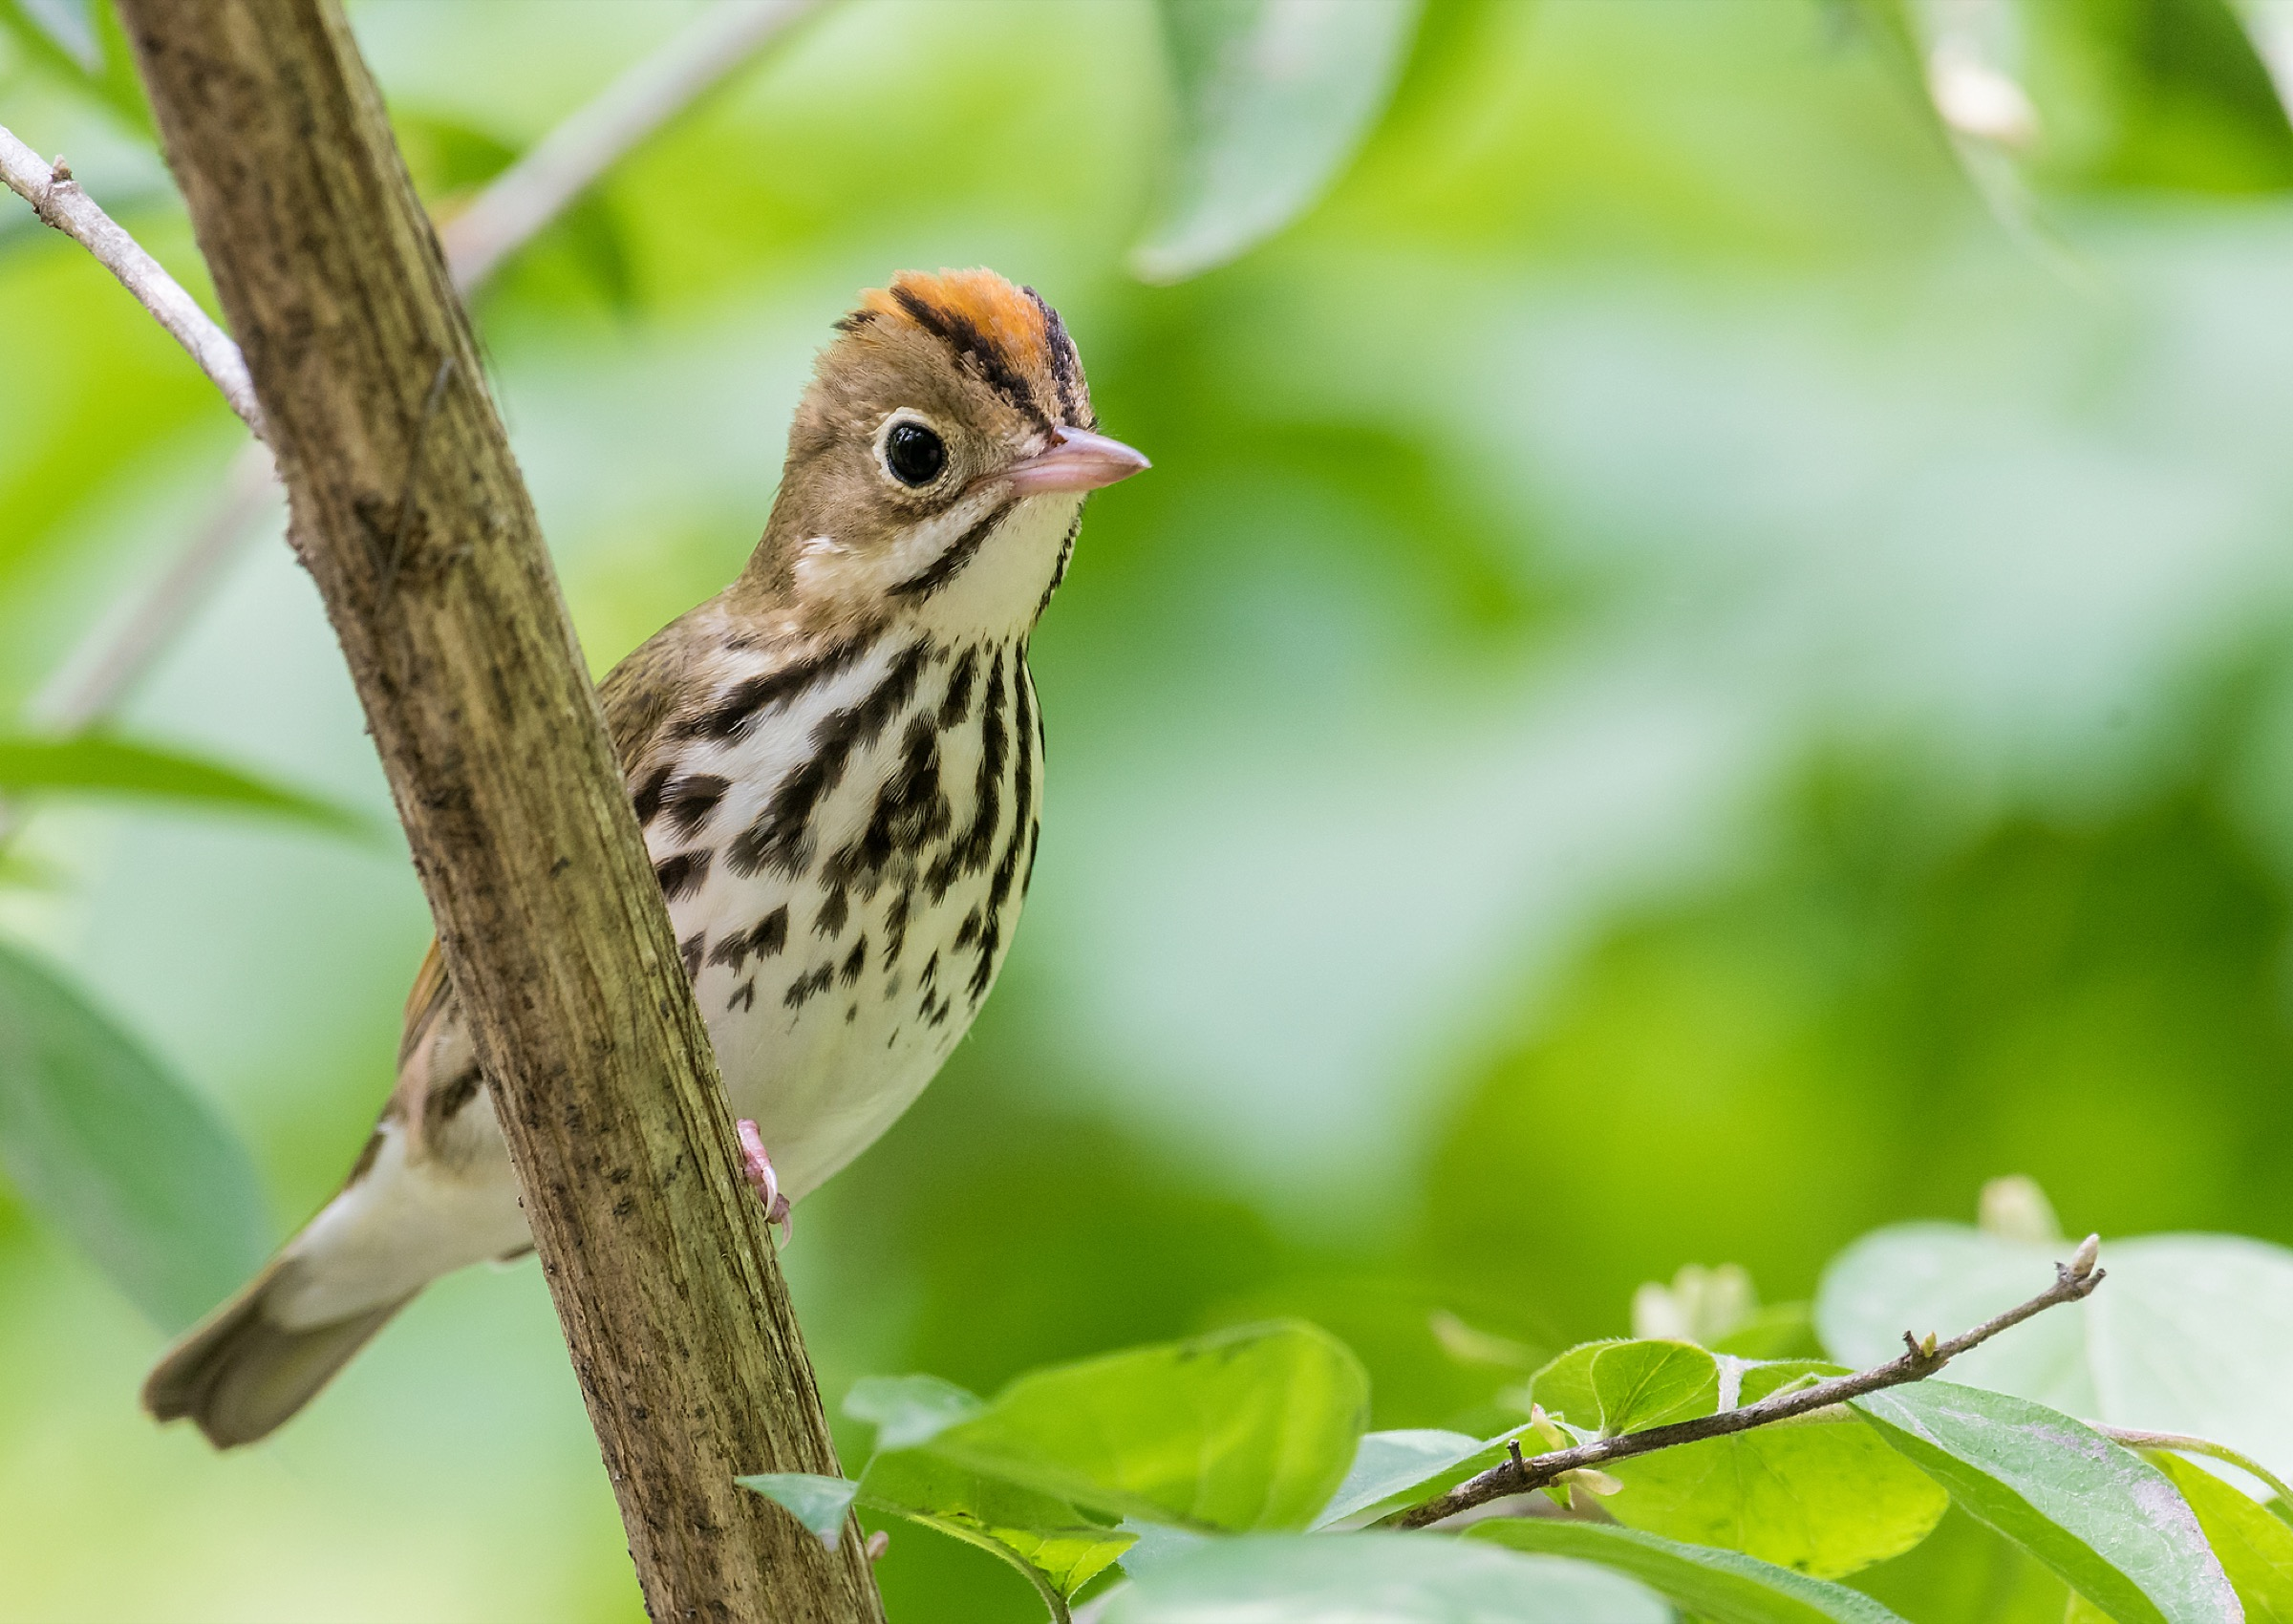 The ovenbird (Seiurus aurocapilla)—a migratory songbird that breeds in eastern North America and winters in Central and South America—is one of 14 species that Gonzalez and his team have profiled in an effort to inform urban-planning decisions around Montreal. Photograph by Larry Keller/Getty